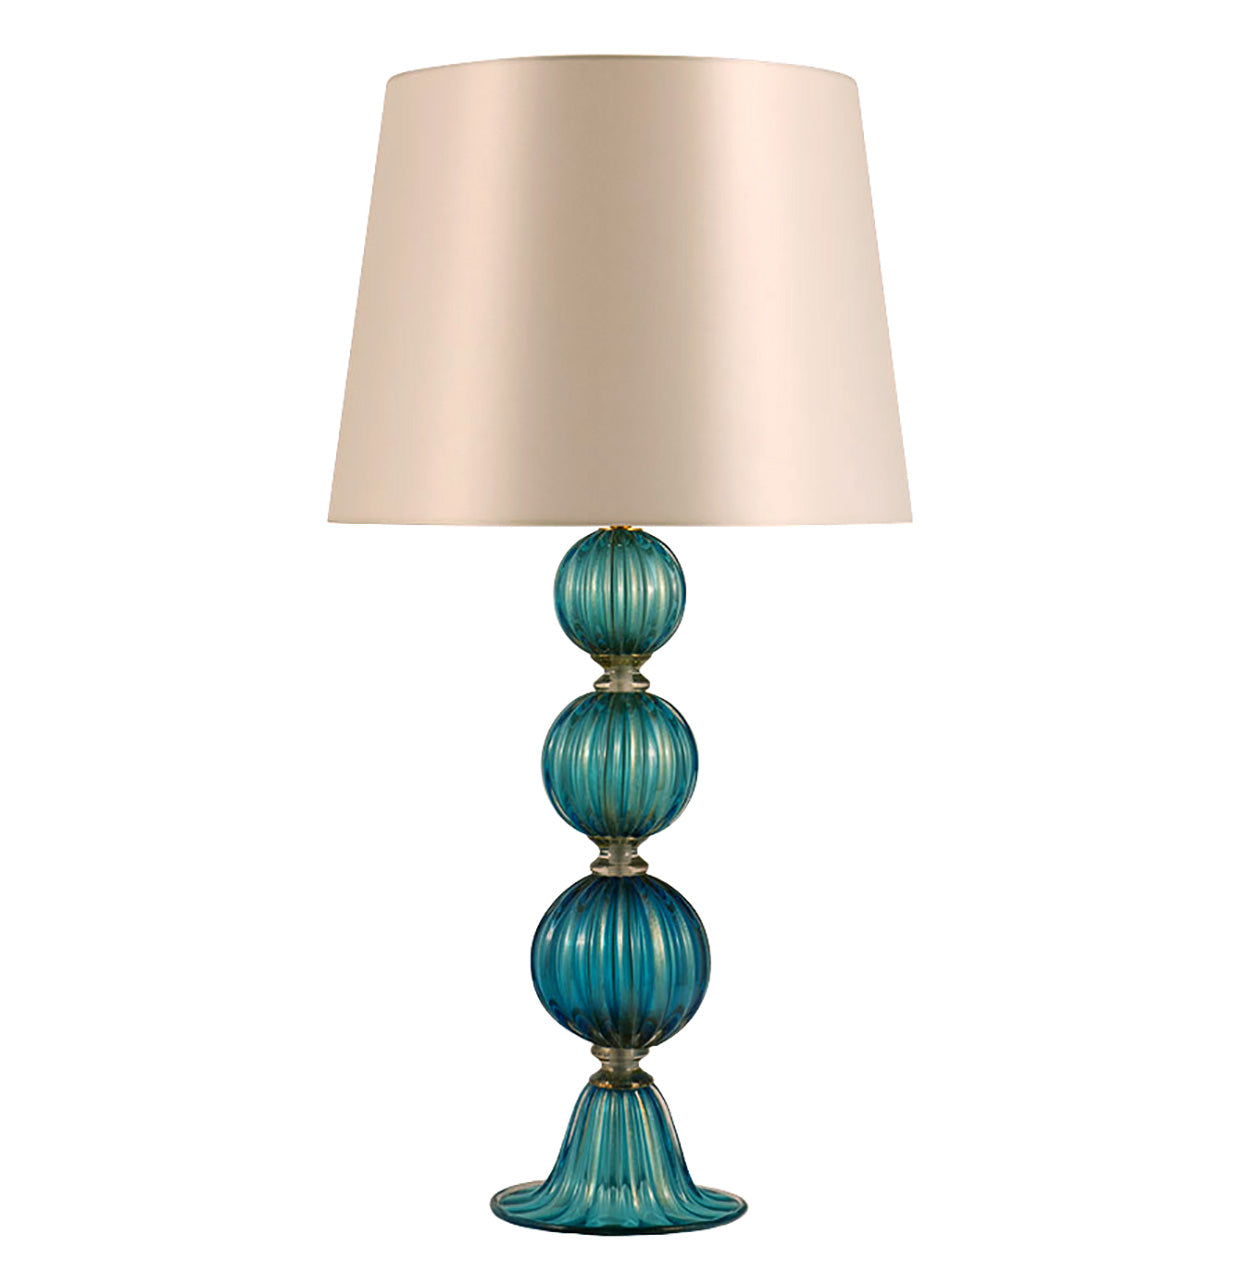 SICILY Murano Glass Table Lamp